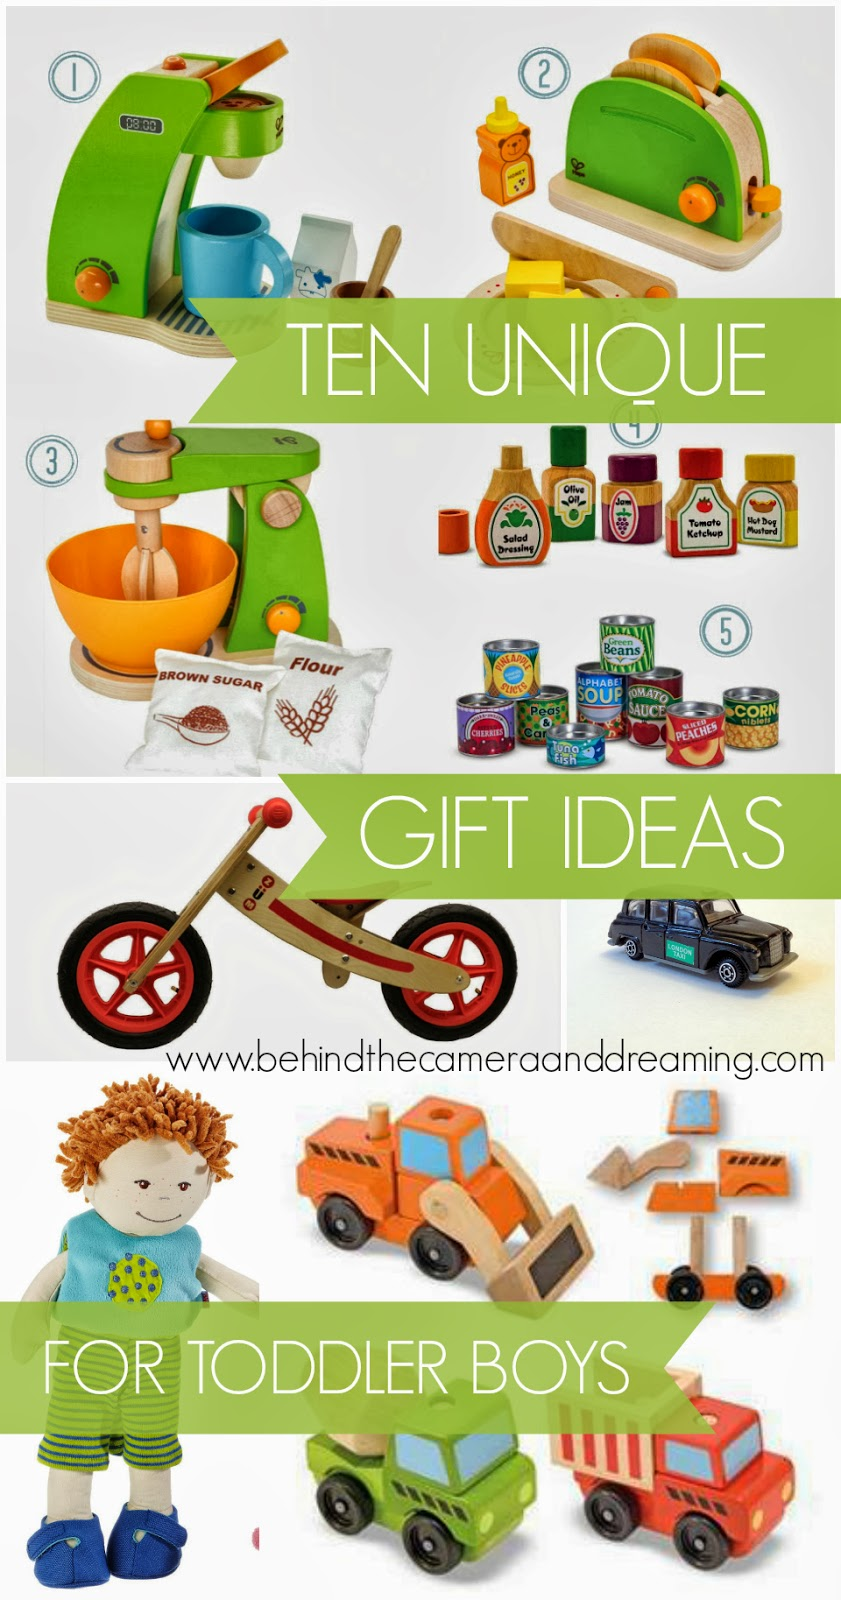 Behind the Camera and Dreaming: Unique Gifts for a 2 Year Old!